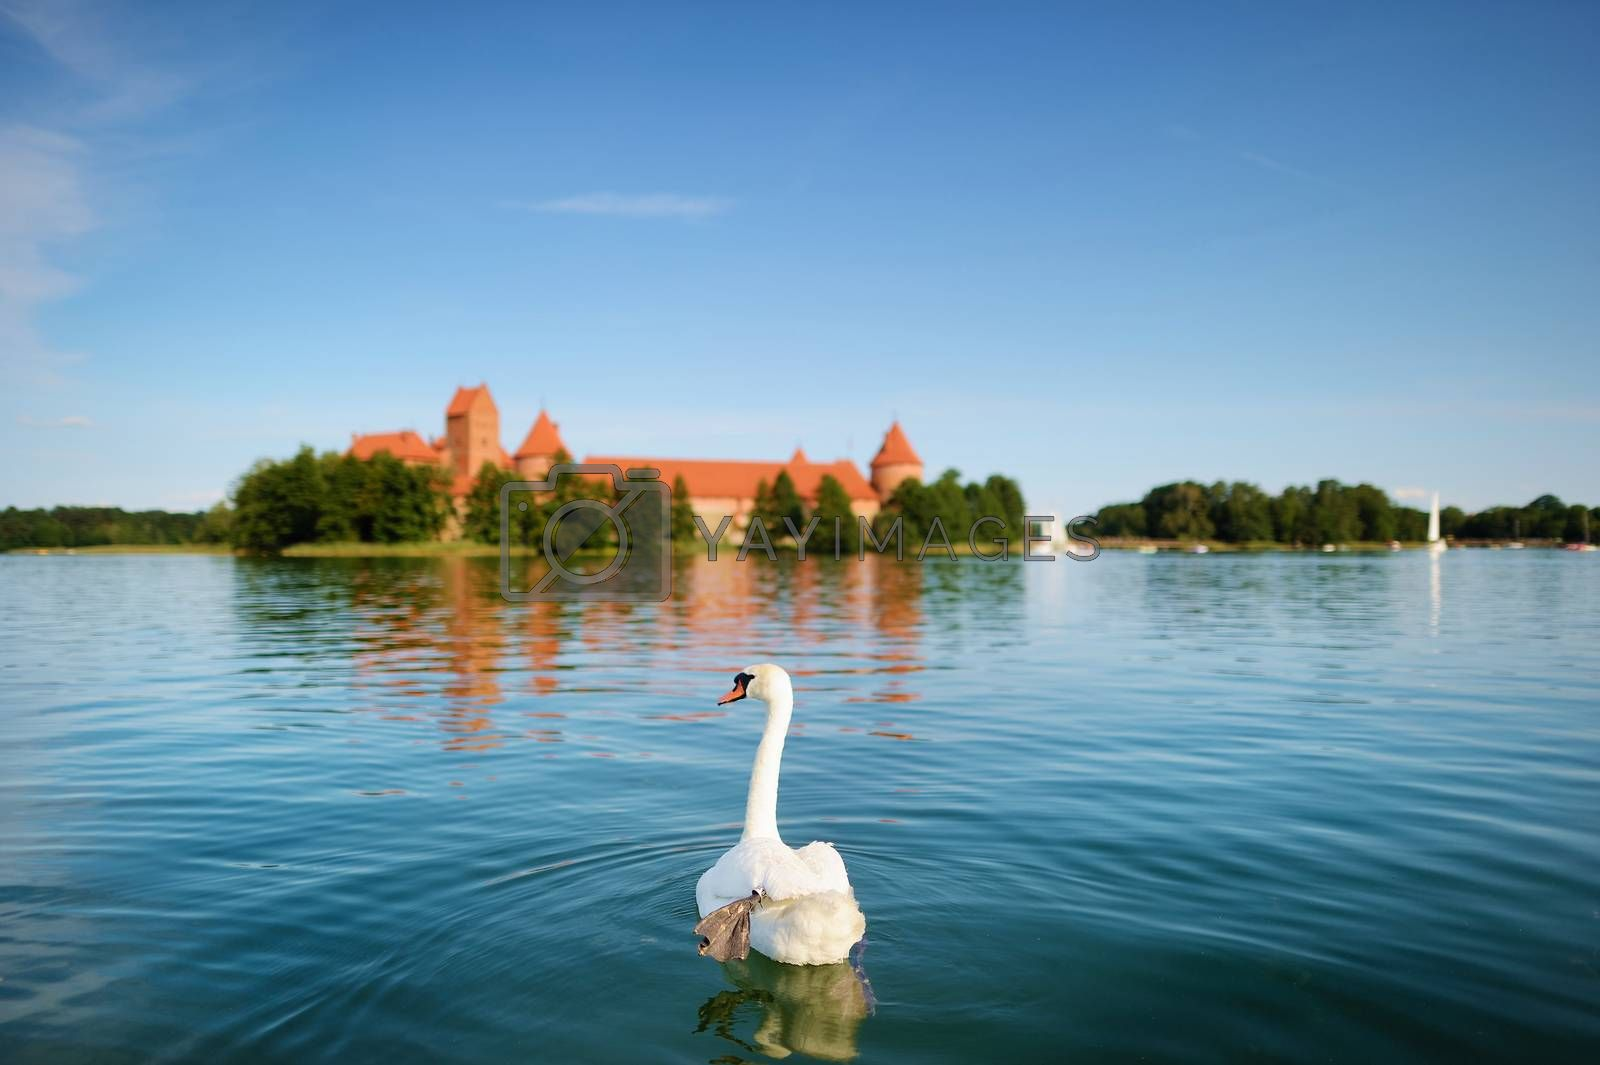 White swan and the Trakai castle in a background on beautiful summer day